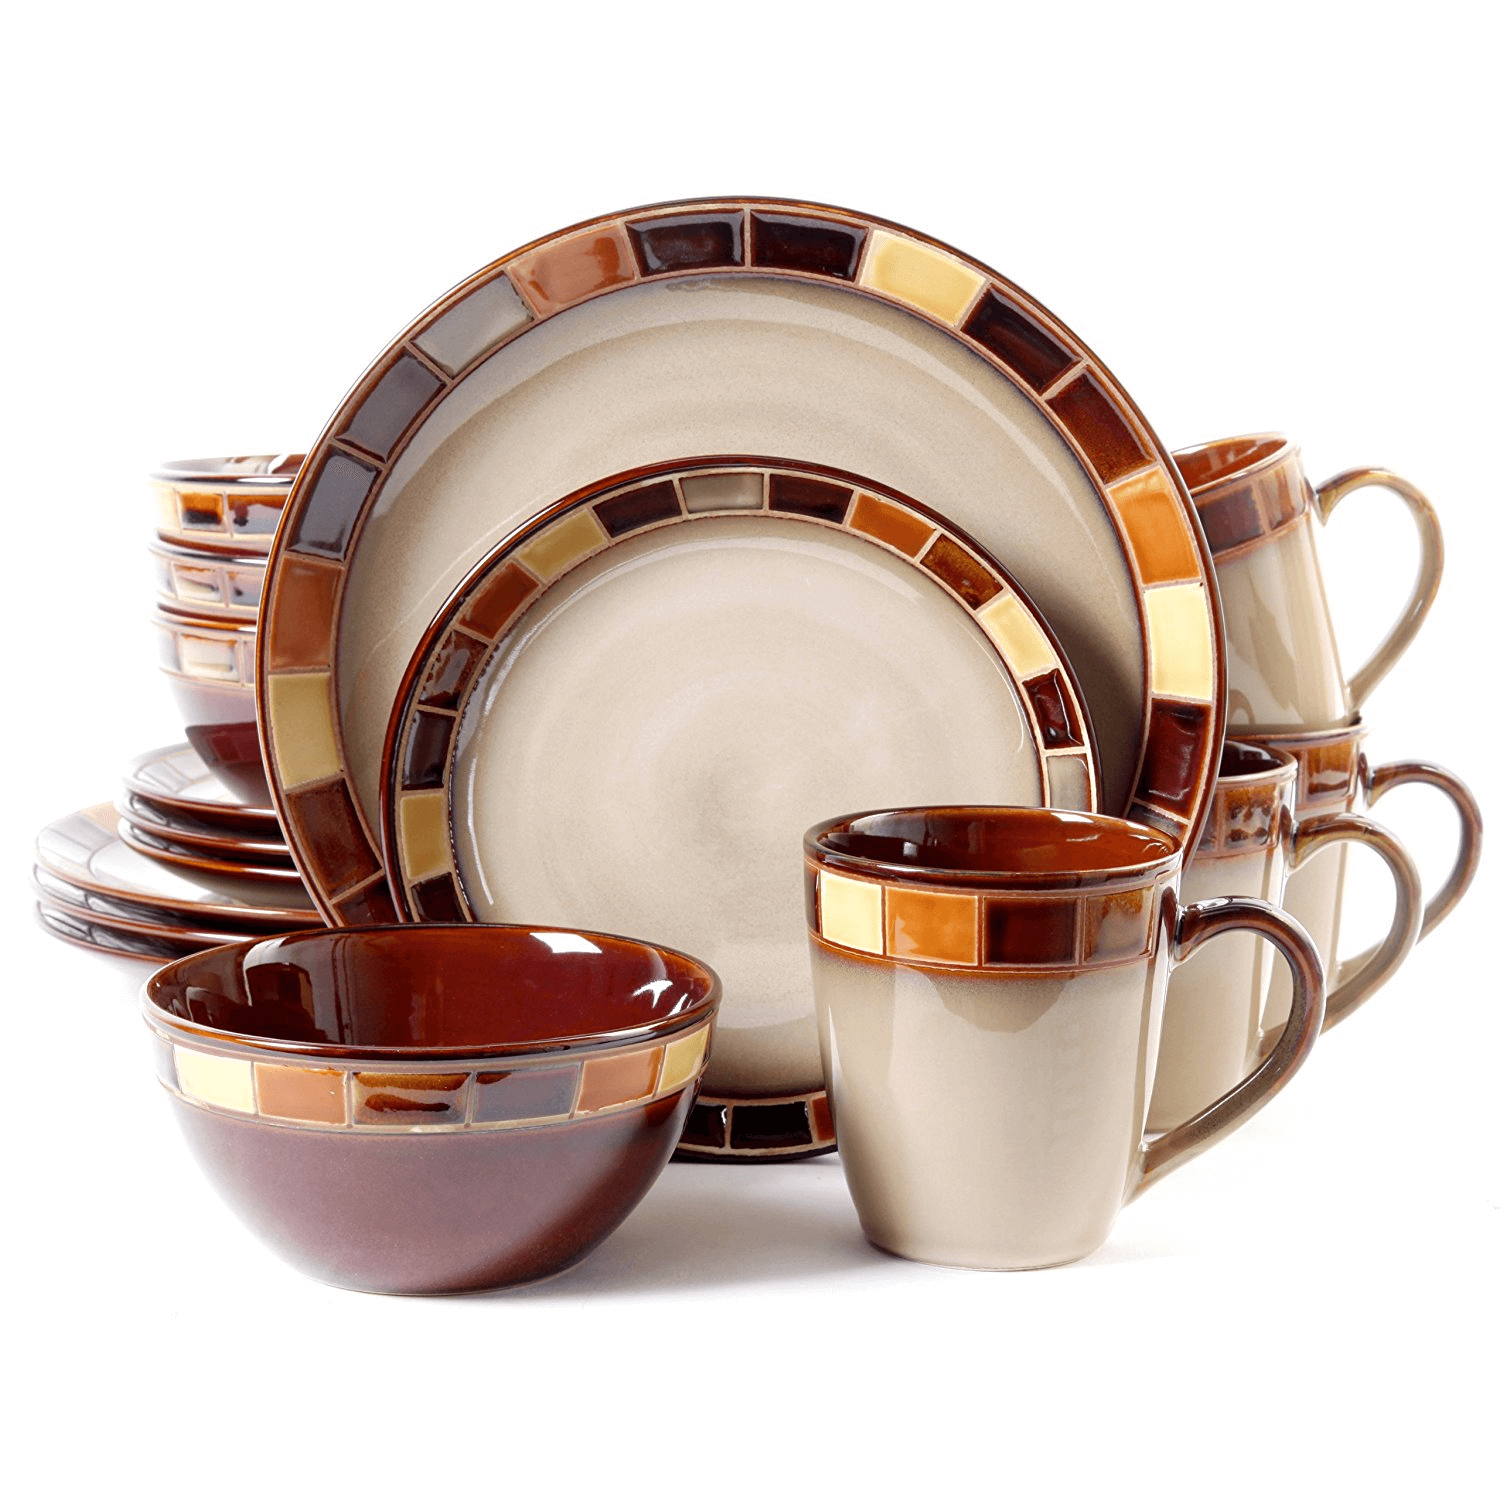 Clean everyday dinnerware set quickly